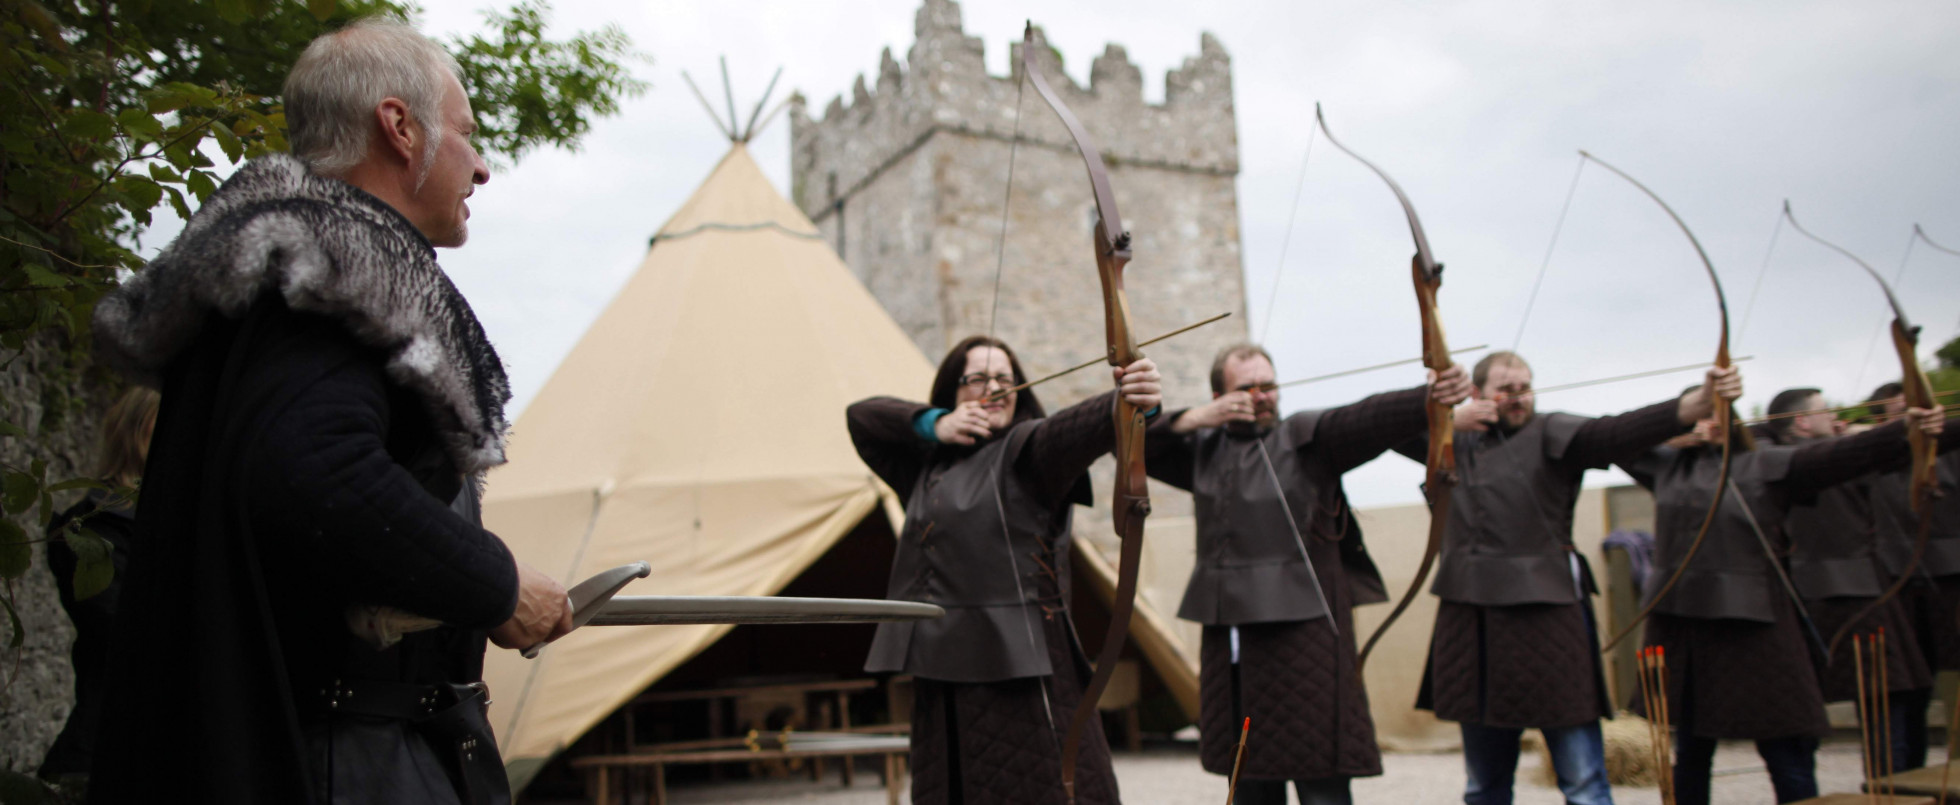 Archery at Castle Winterfell